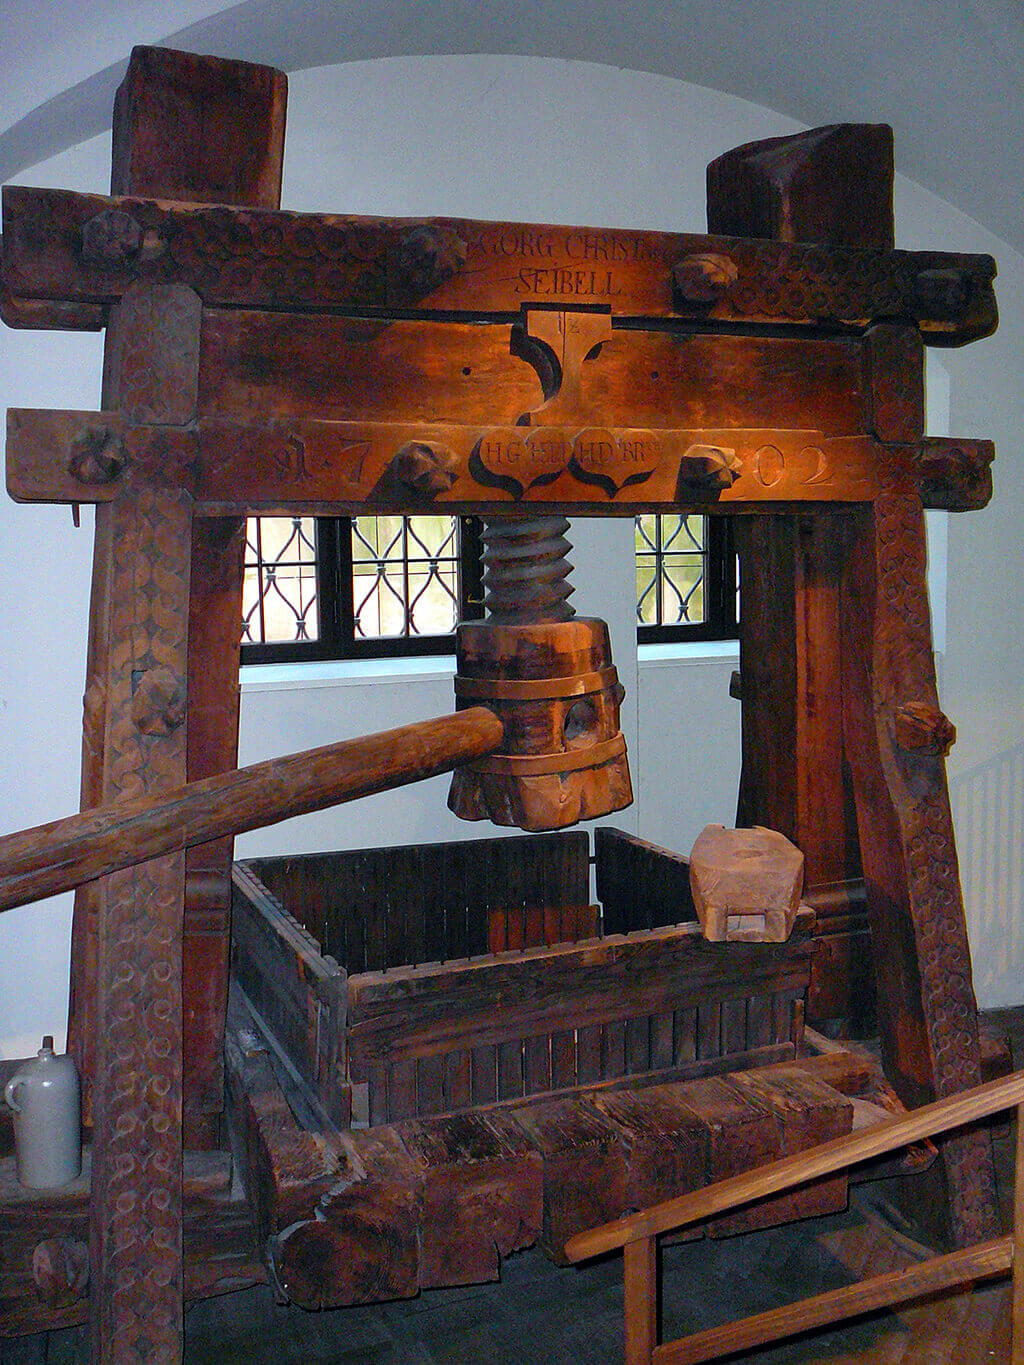 Inspiration for Printing Press